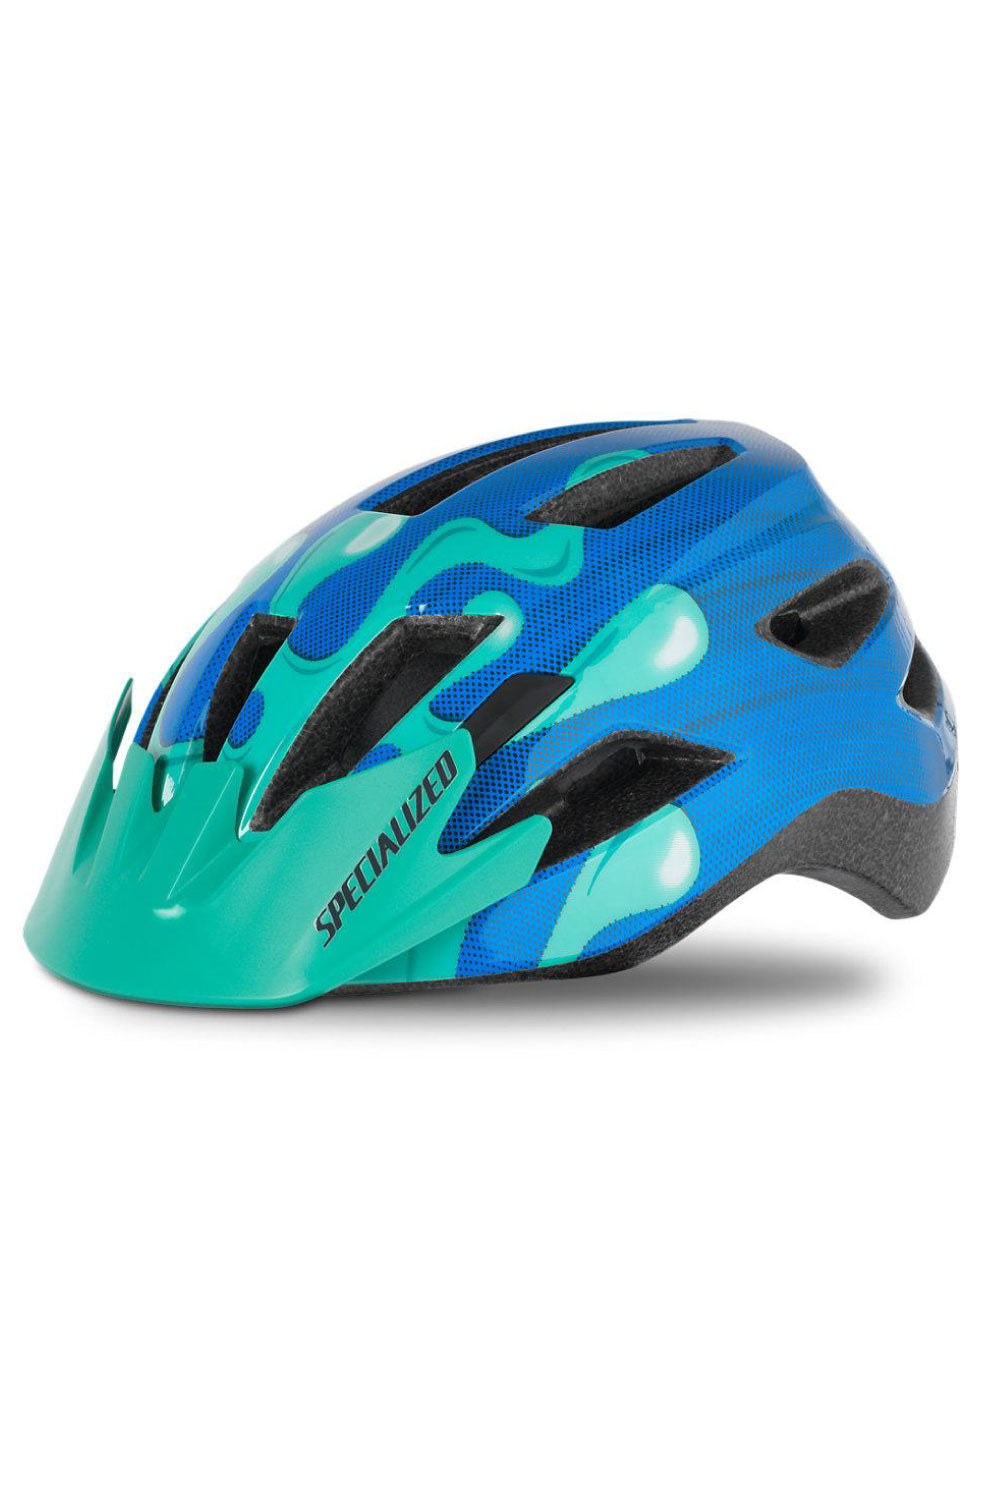 Specialized Shuffle Standard Buckle Youth Mountain Bike Helmet (7-10 years old)